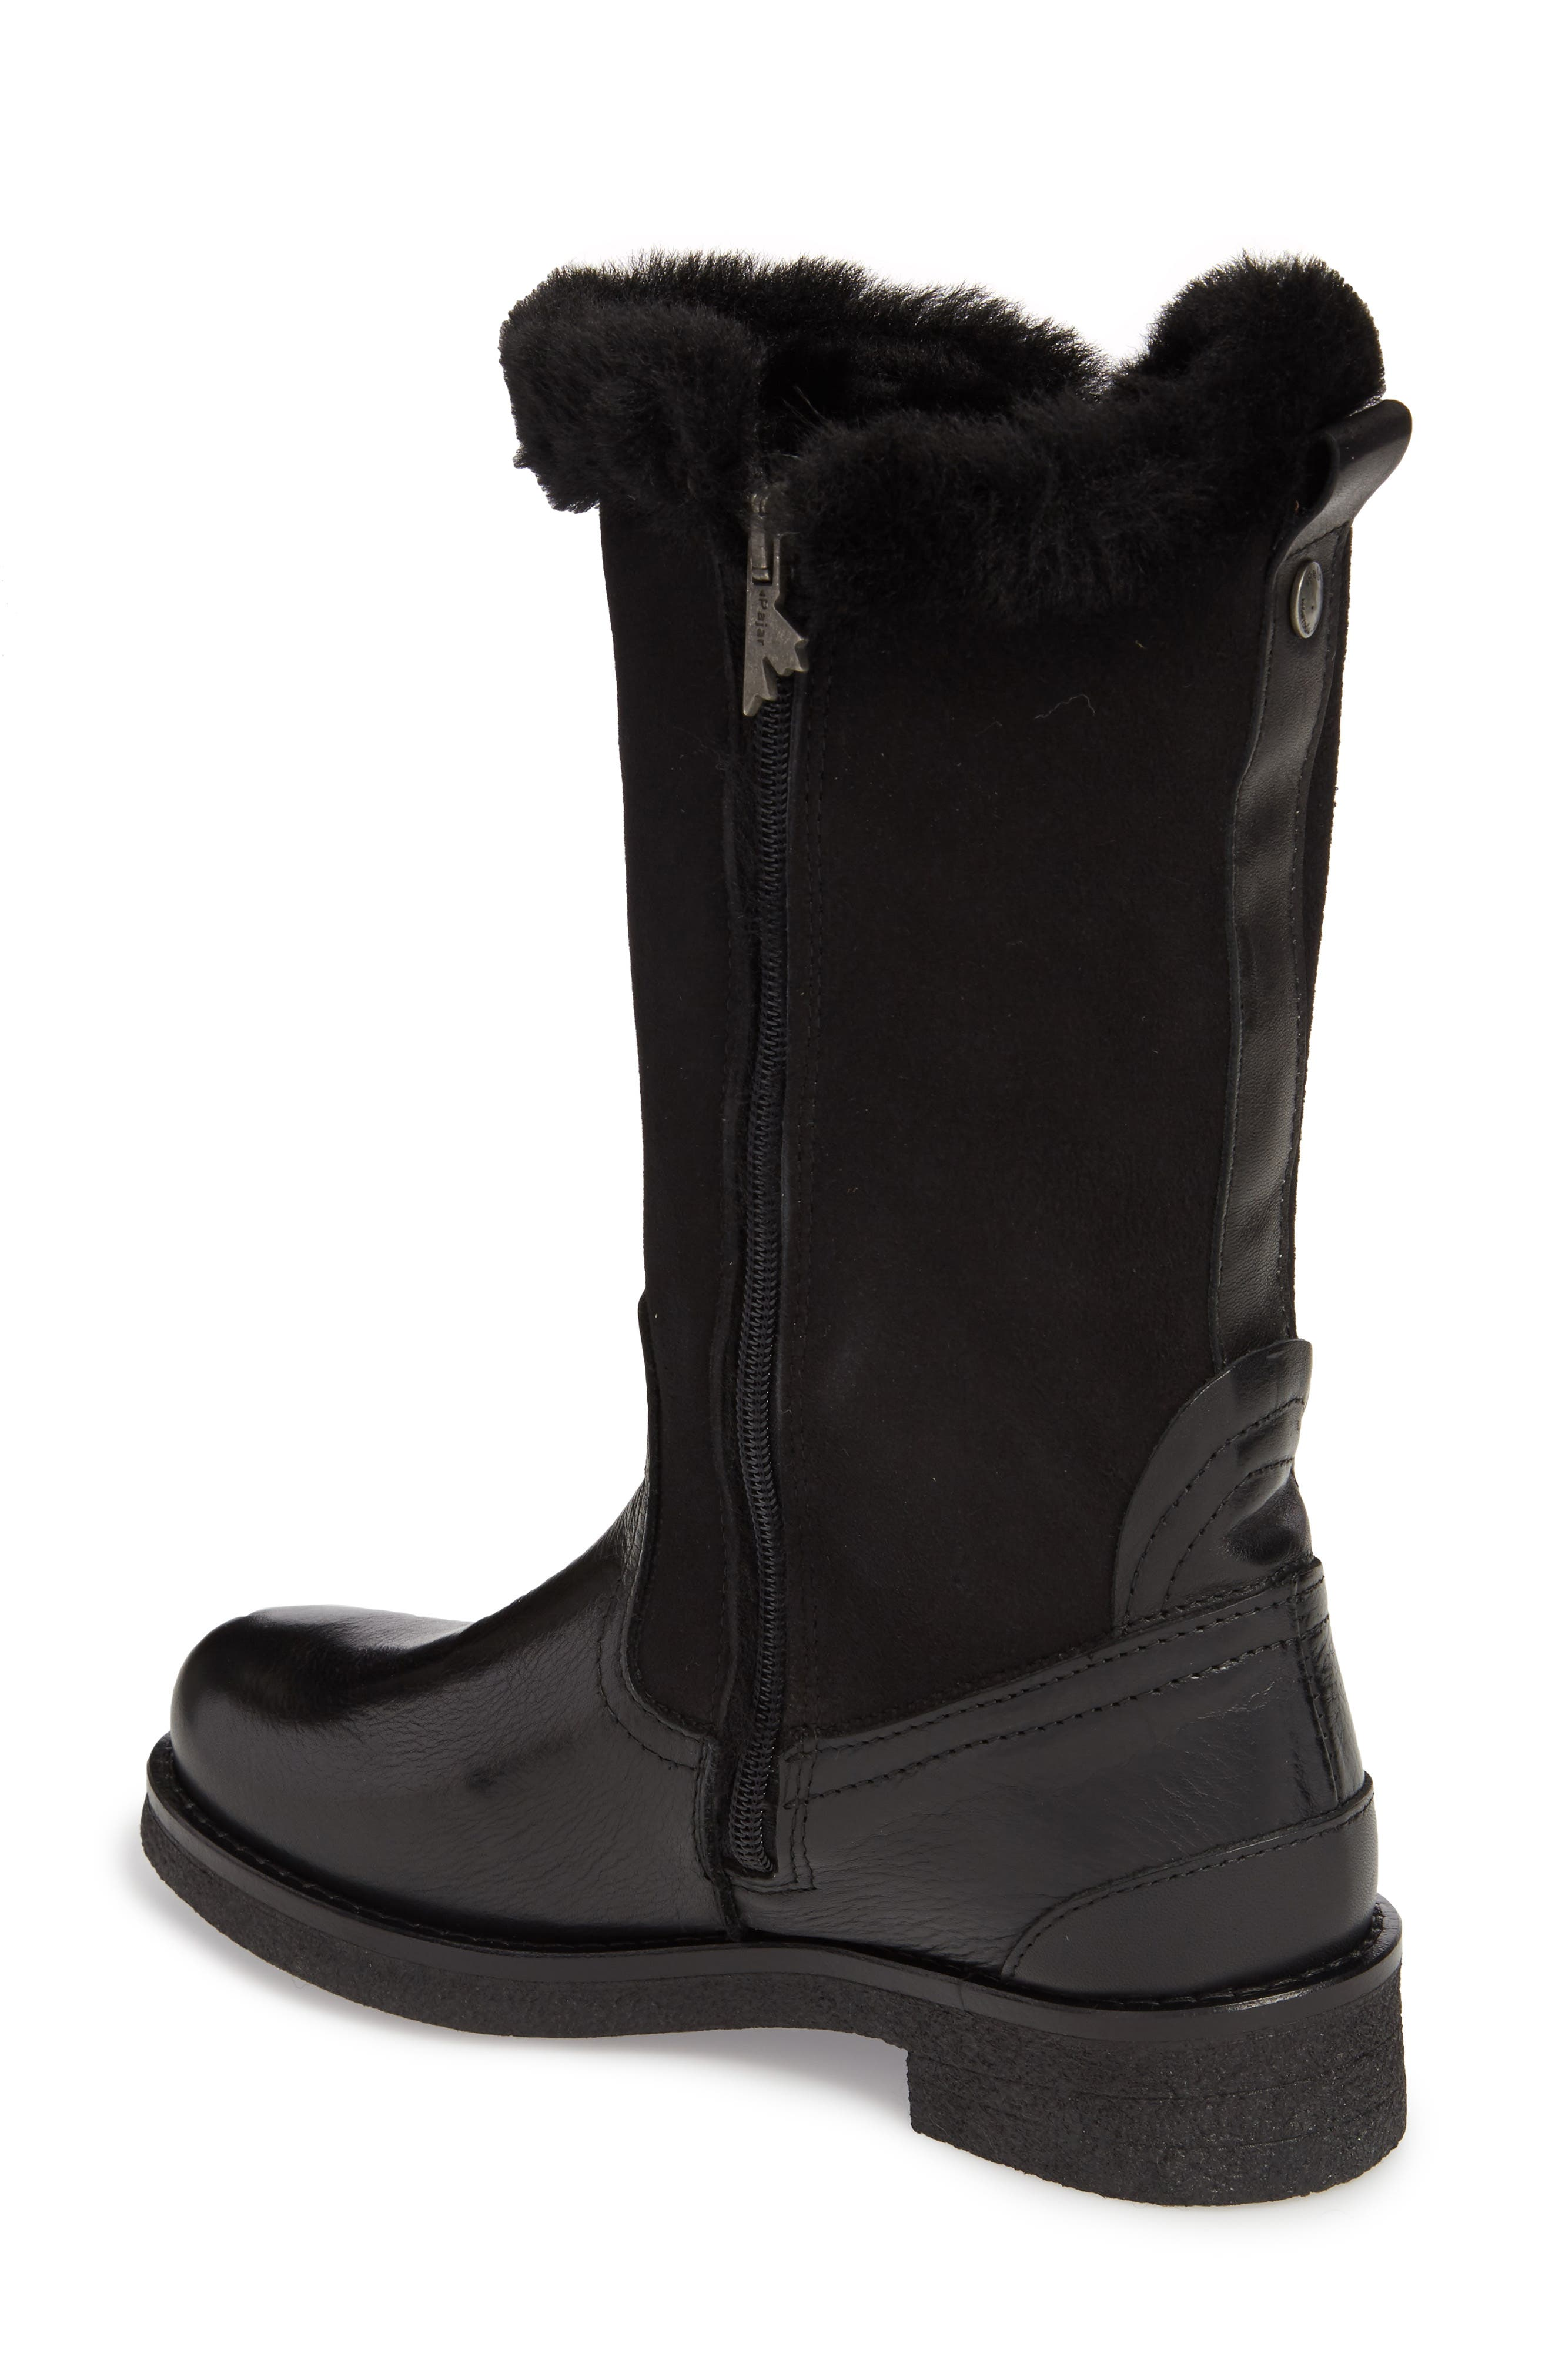 Amarillo Waterproof Insulated Snow Boot,                             Alternate thumbnail 2, color,                             001